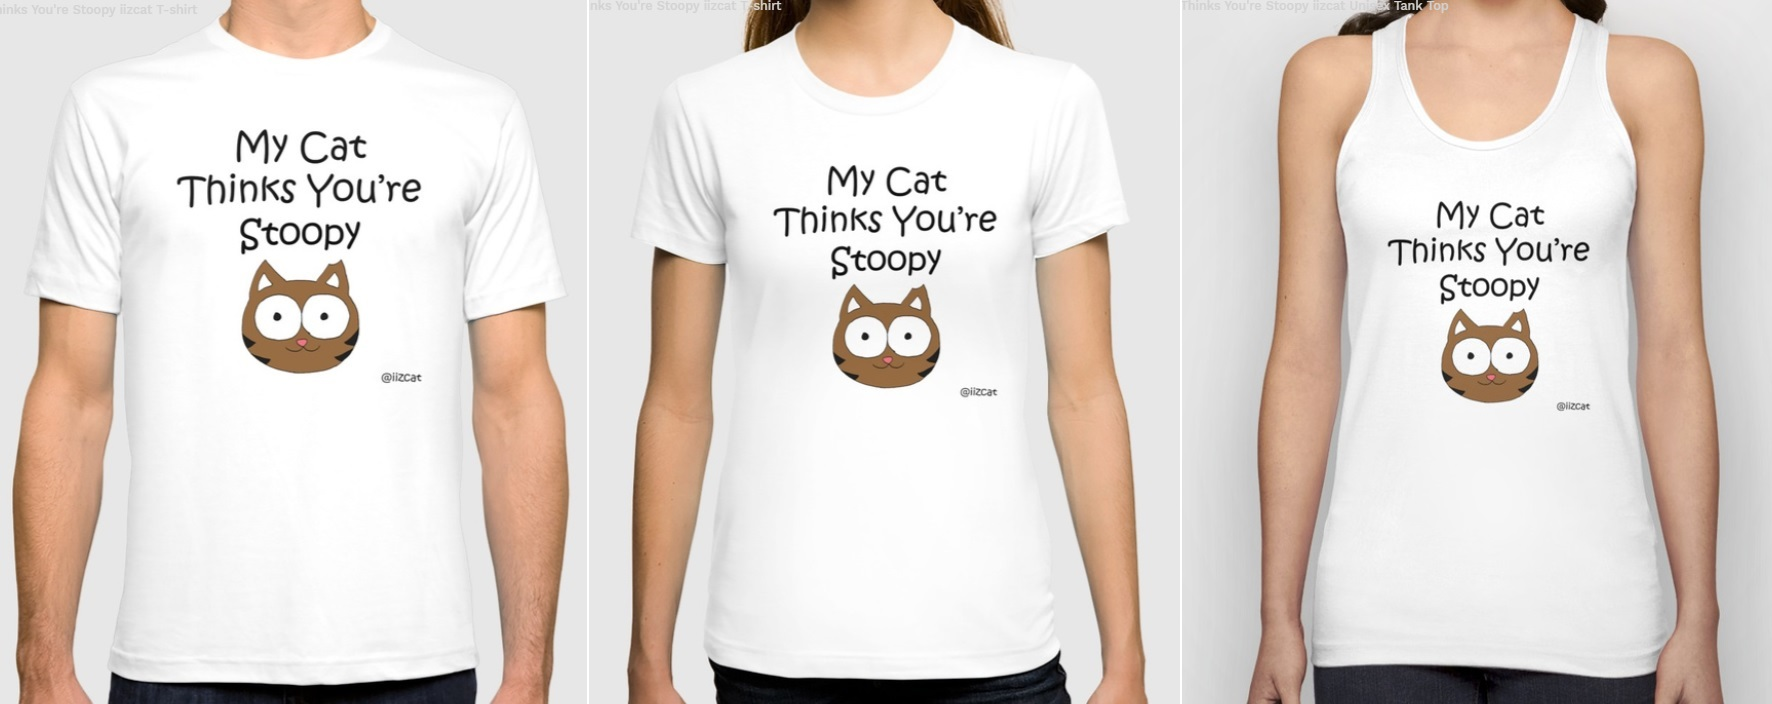 iizcat stoopy shirts